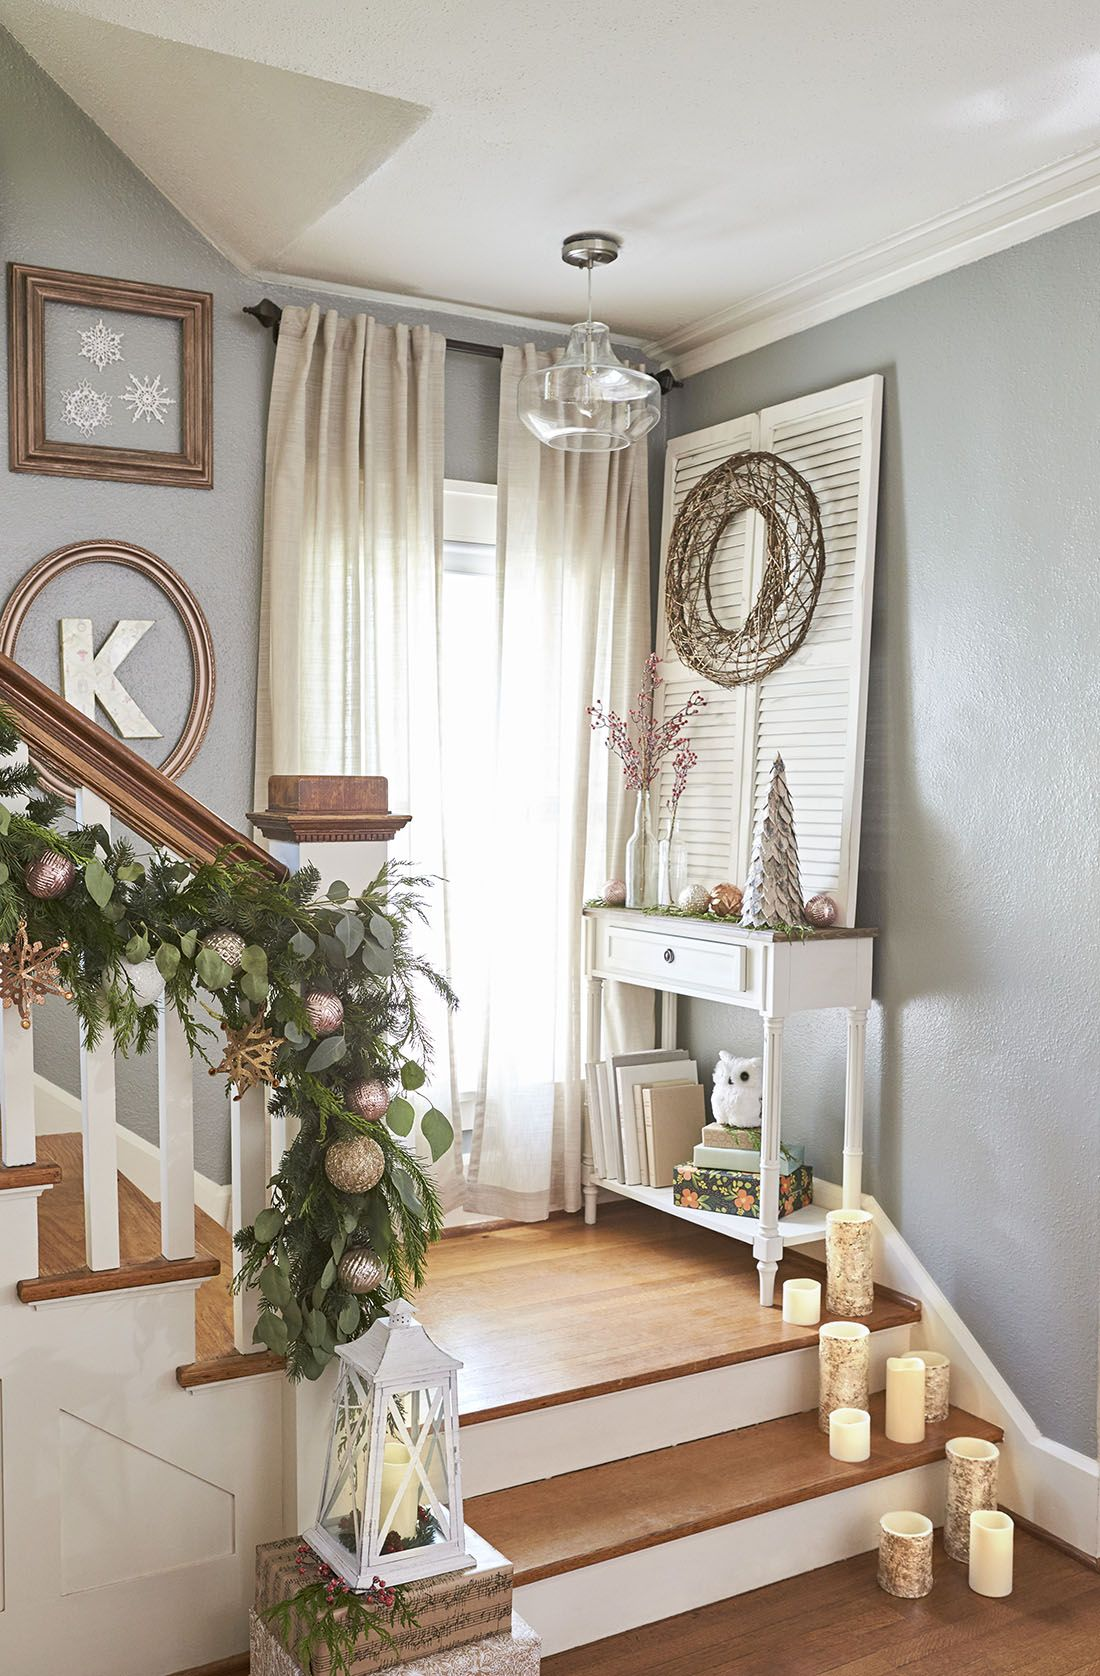 Good Home Design Ideas: Stair Landings Are Good Spots For Holiday Decor. Set Out